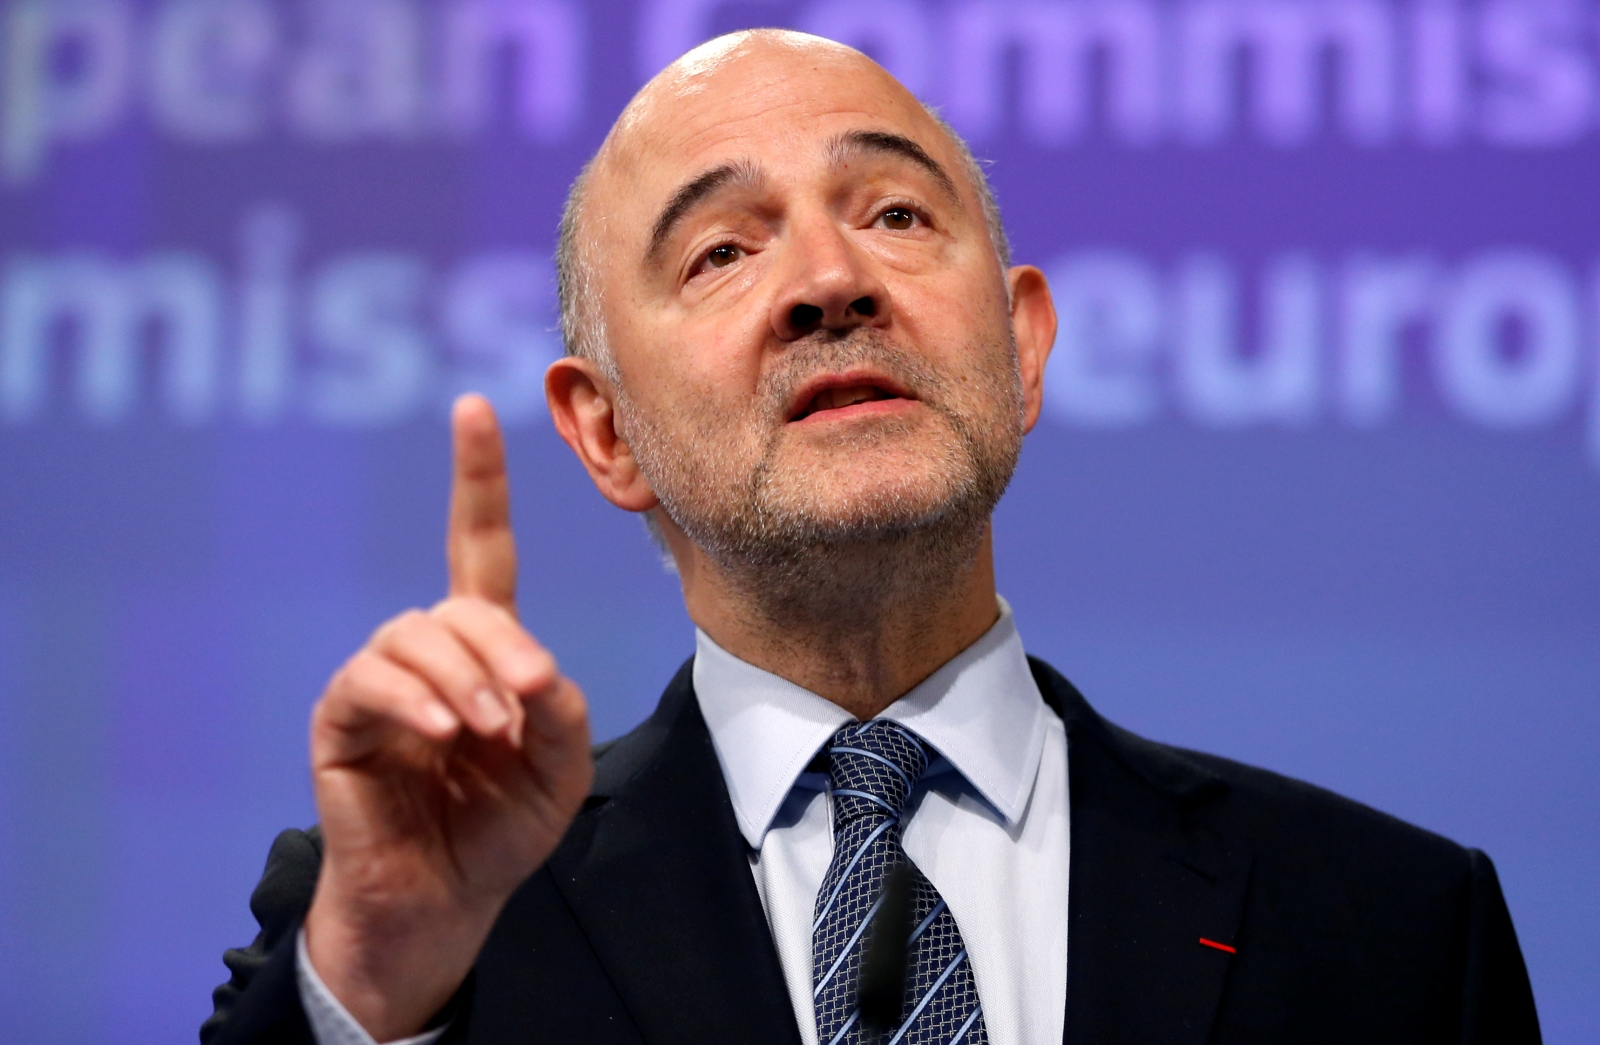 Tax Avoidance: European commission to overhaul how companies report their profits, Pierre Moscovici says